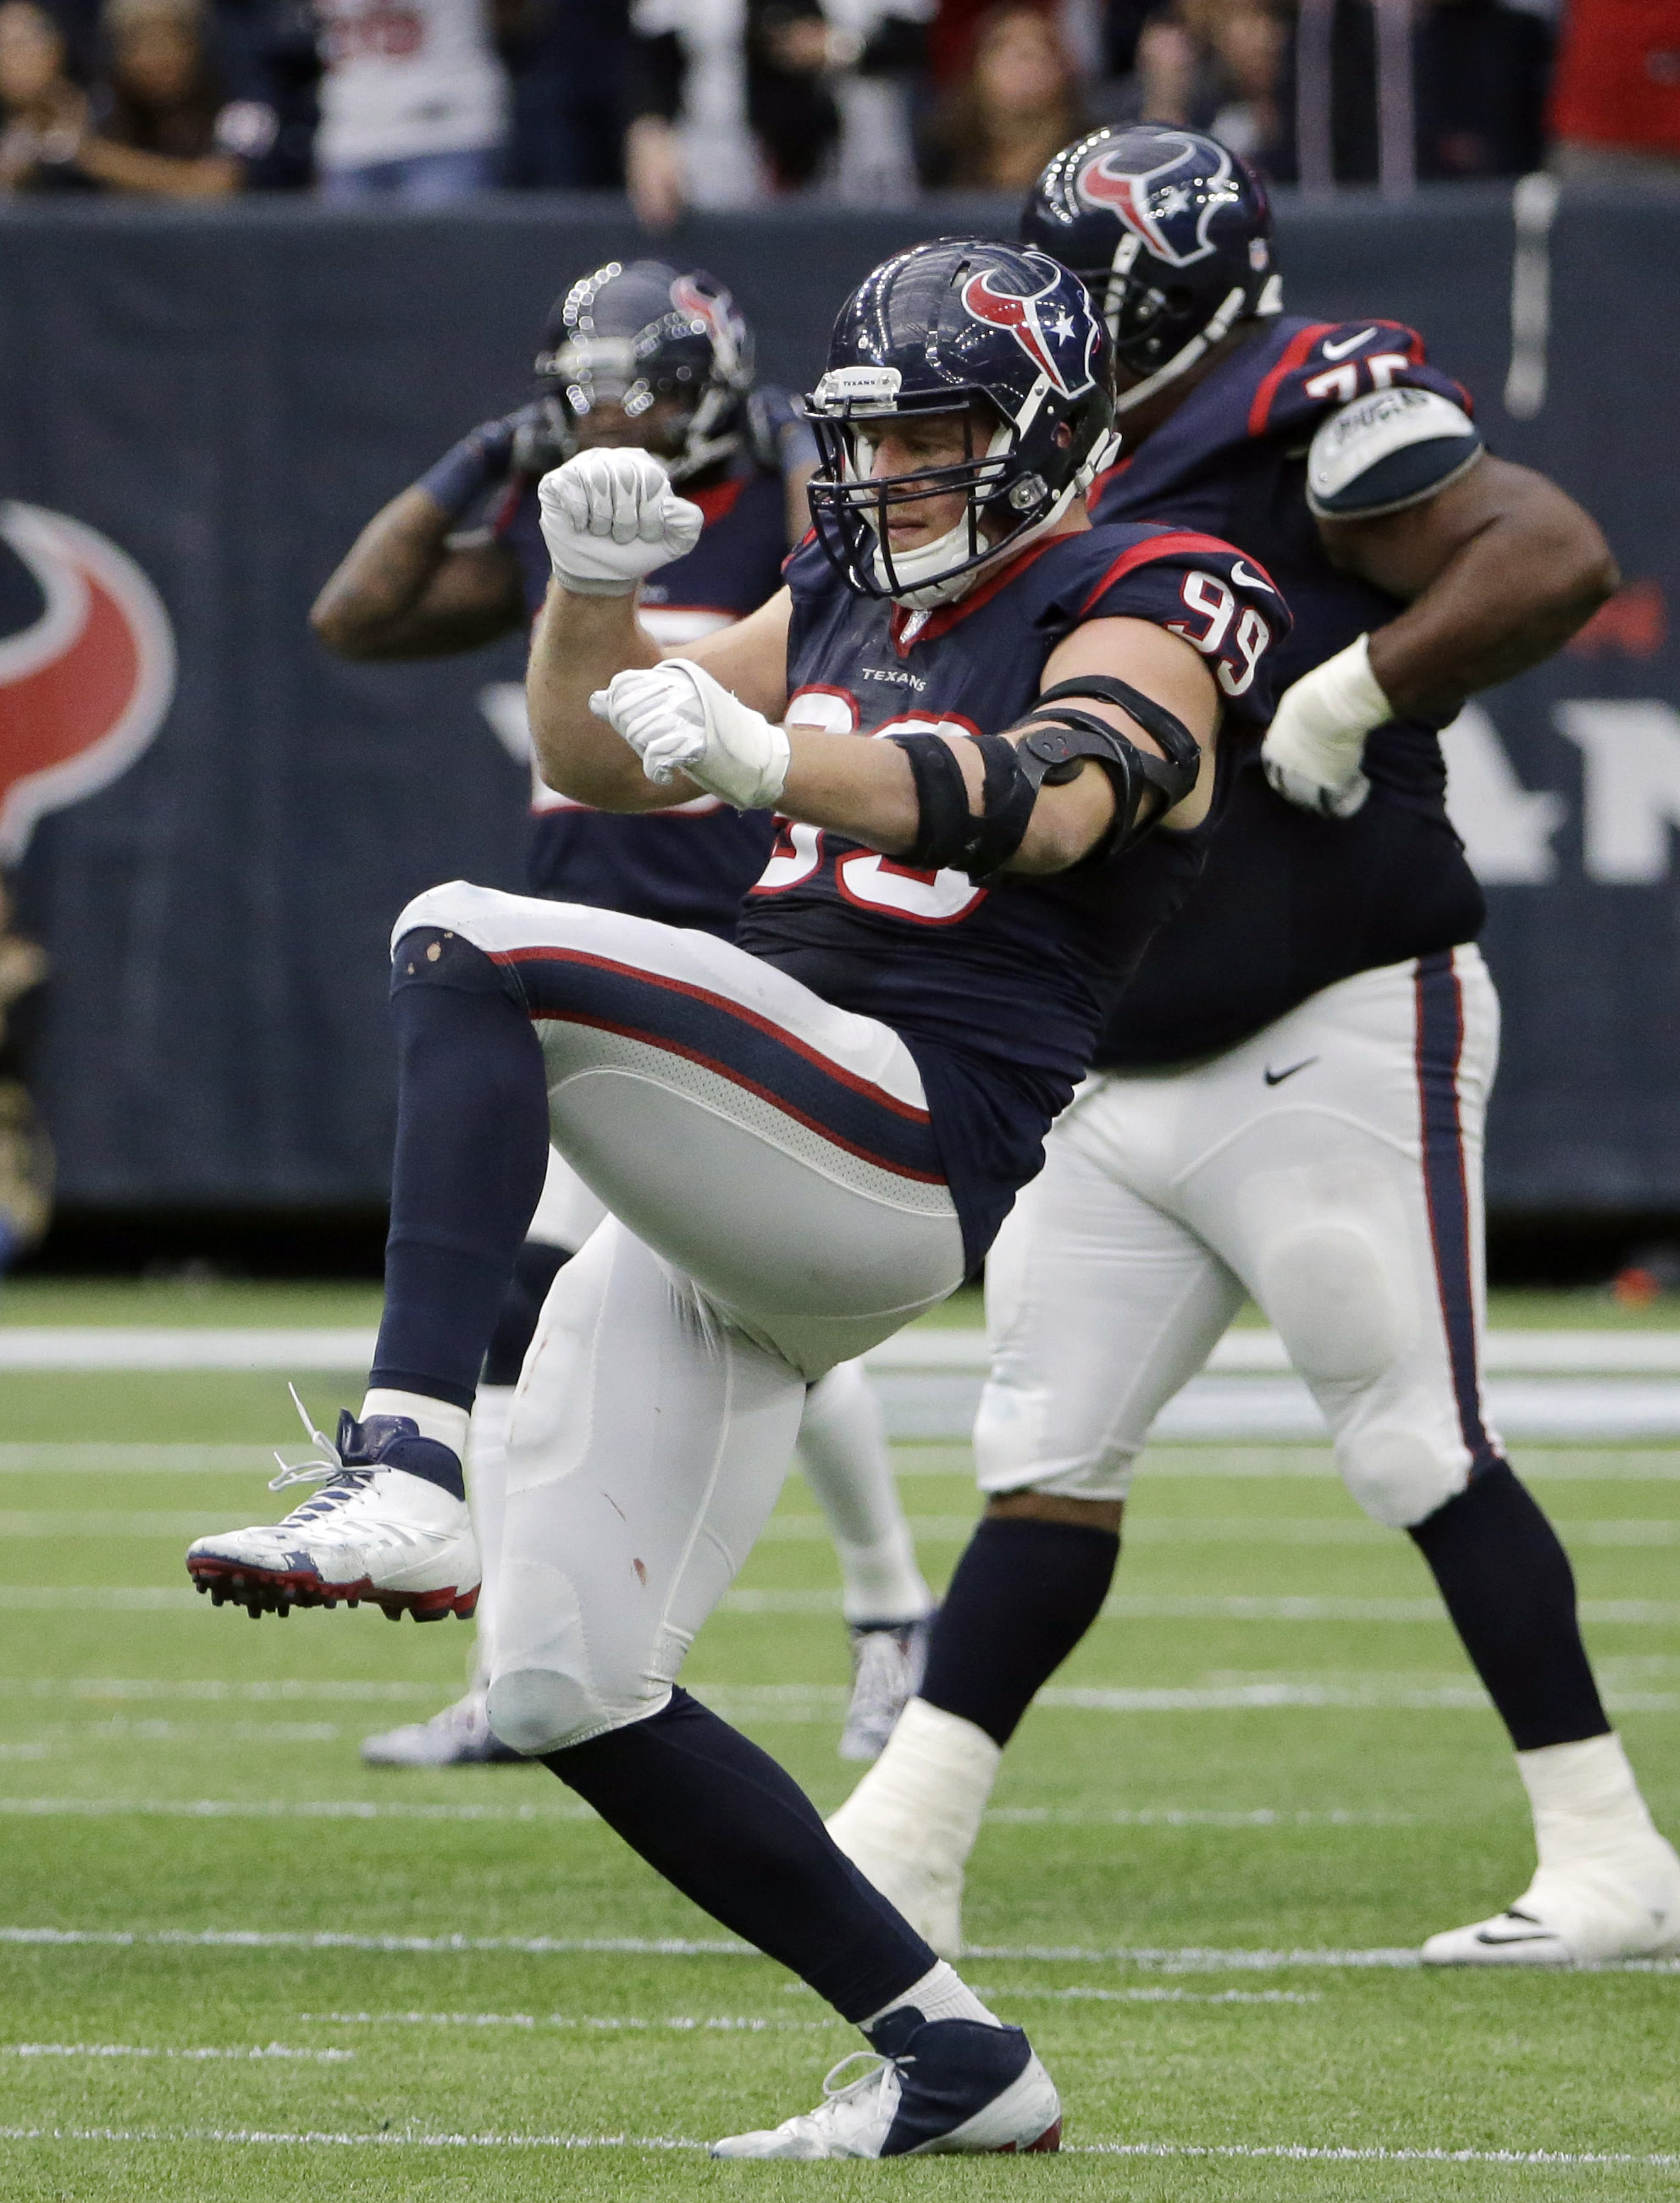 Houston Texans defensive end J.J. Watt (99) celebrates after he cause Jacksonville Jaguars quarterback Blake Bortles to fumble during the second half an NFL football game Sunday, Jan. 3, 2016, in Houston. The fumble was recovered by Houston Texans outside